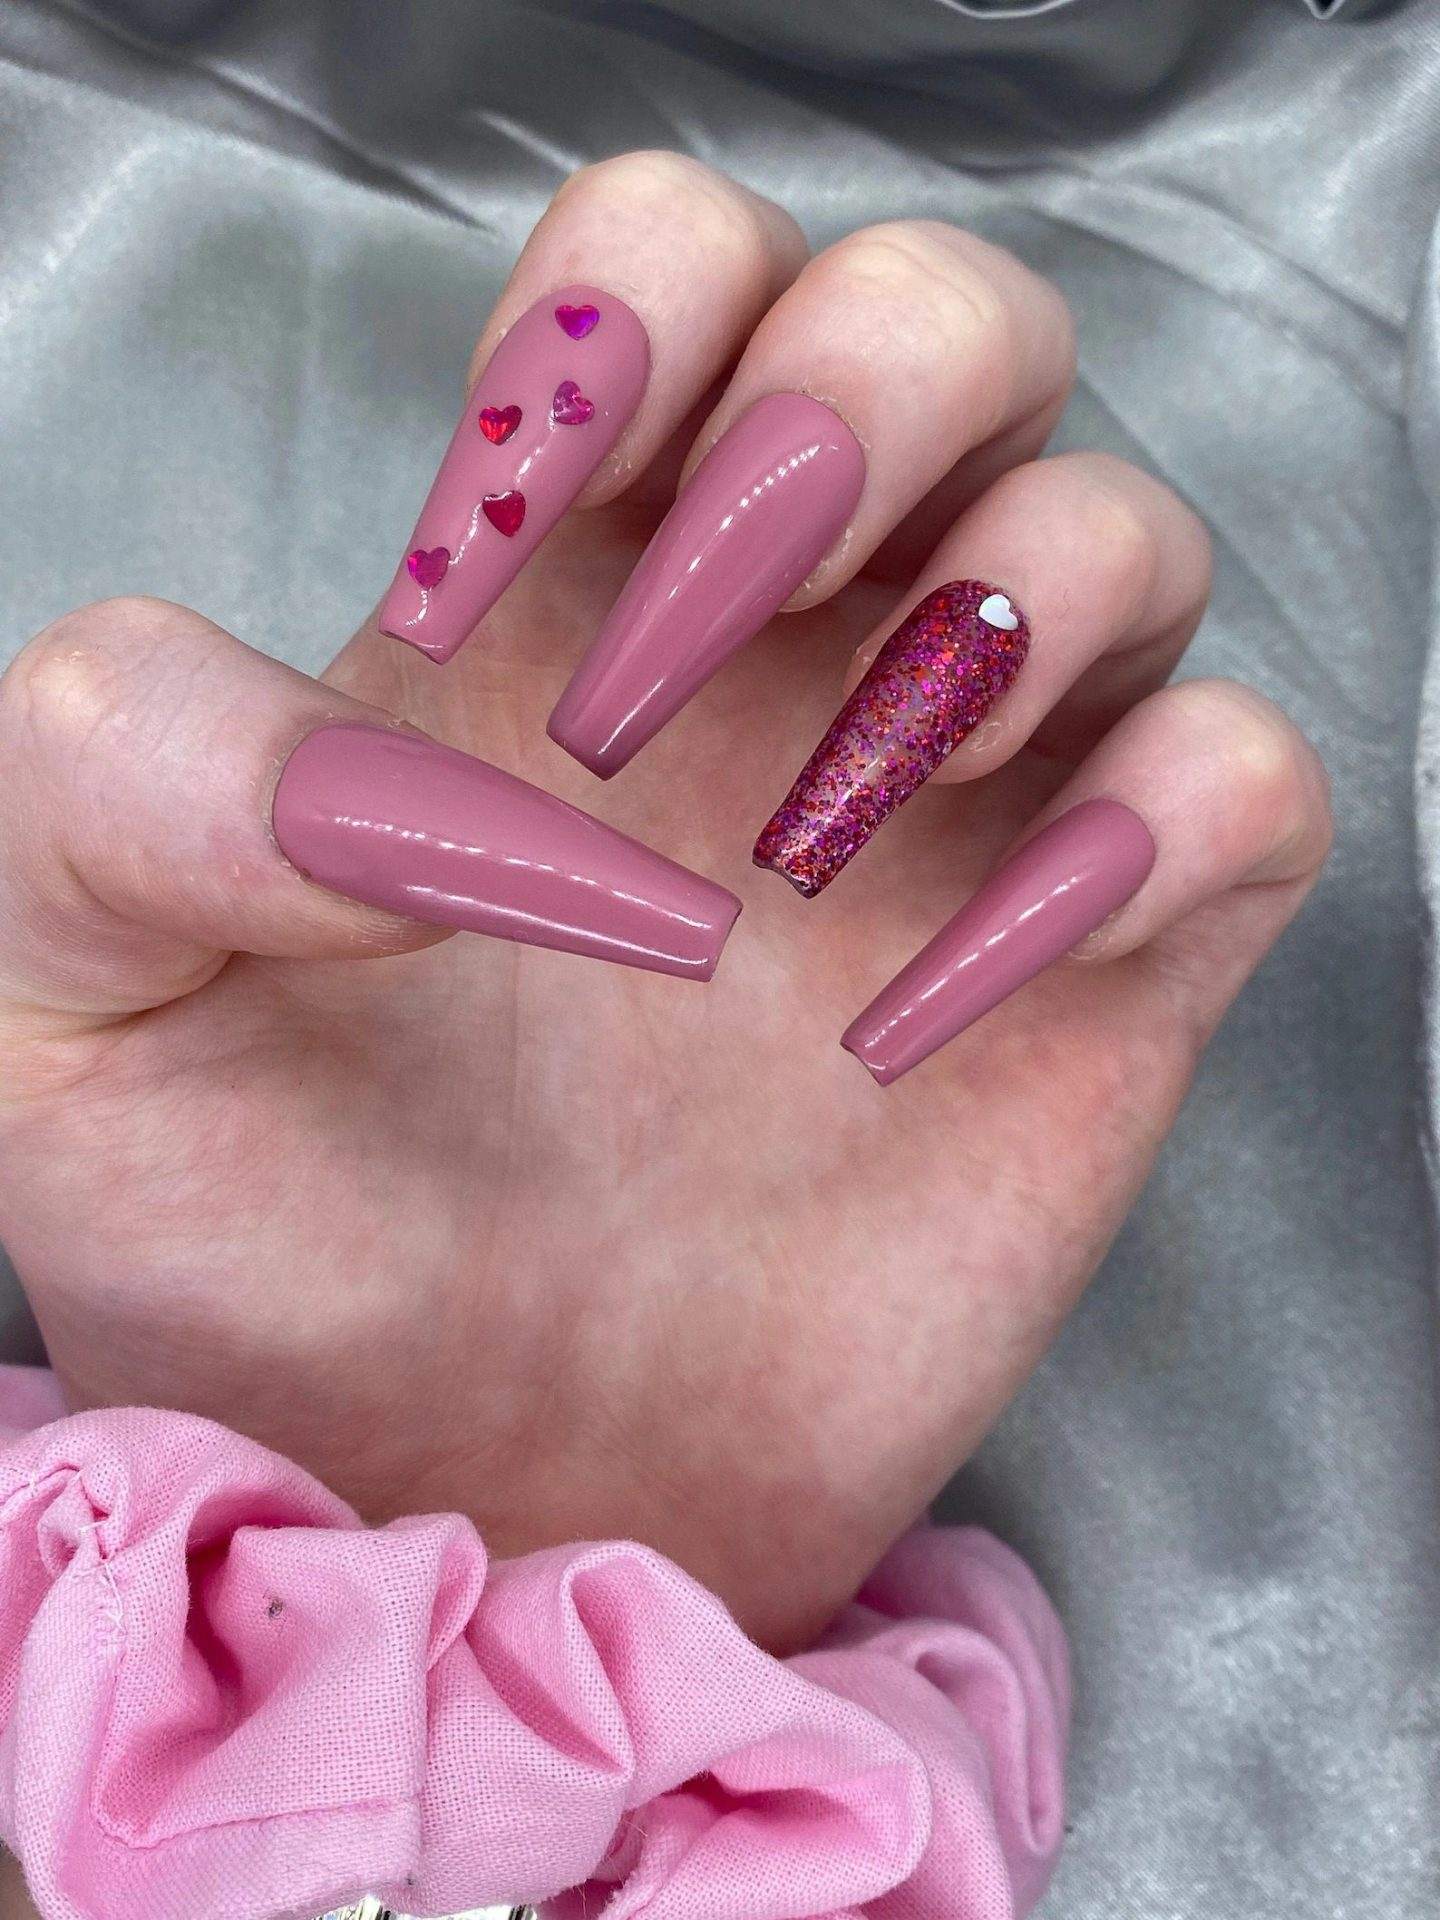 Mauve and pink heart nails with glitter